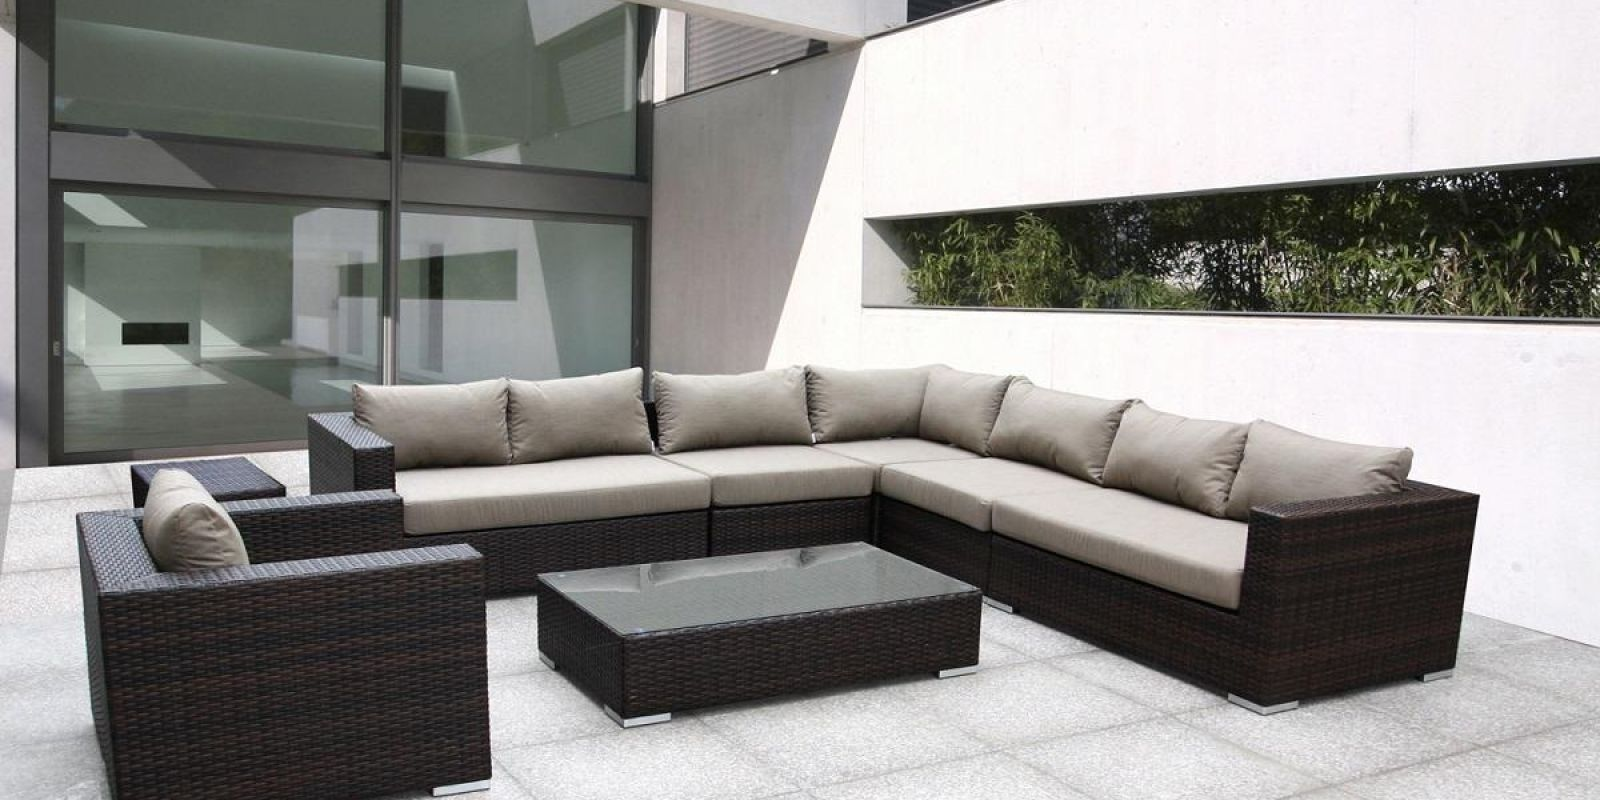 Outdoor Furniture | American Casual Living on Casual Living Patio id=12338